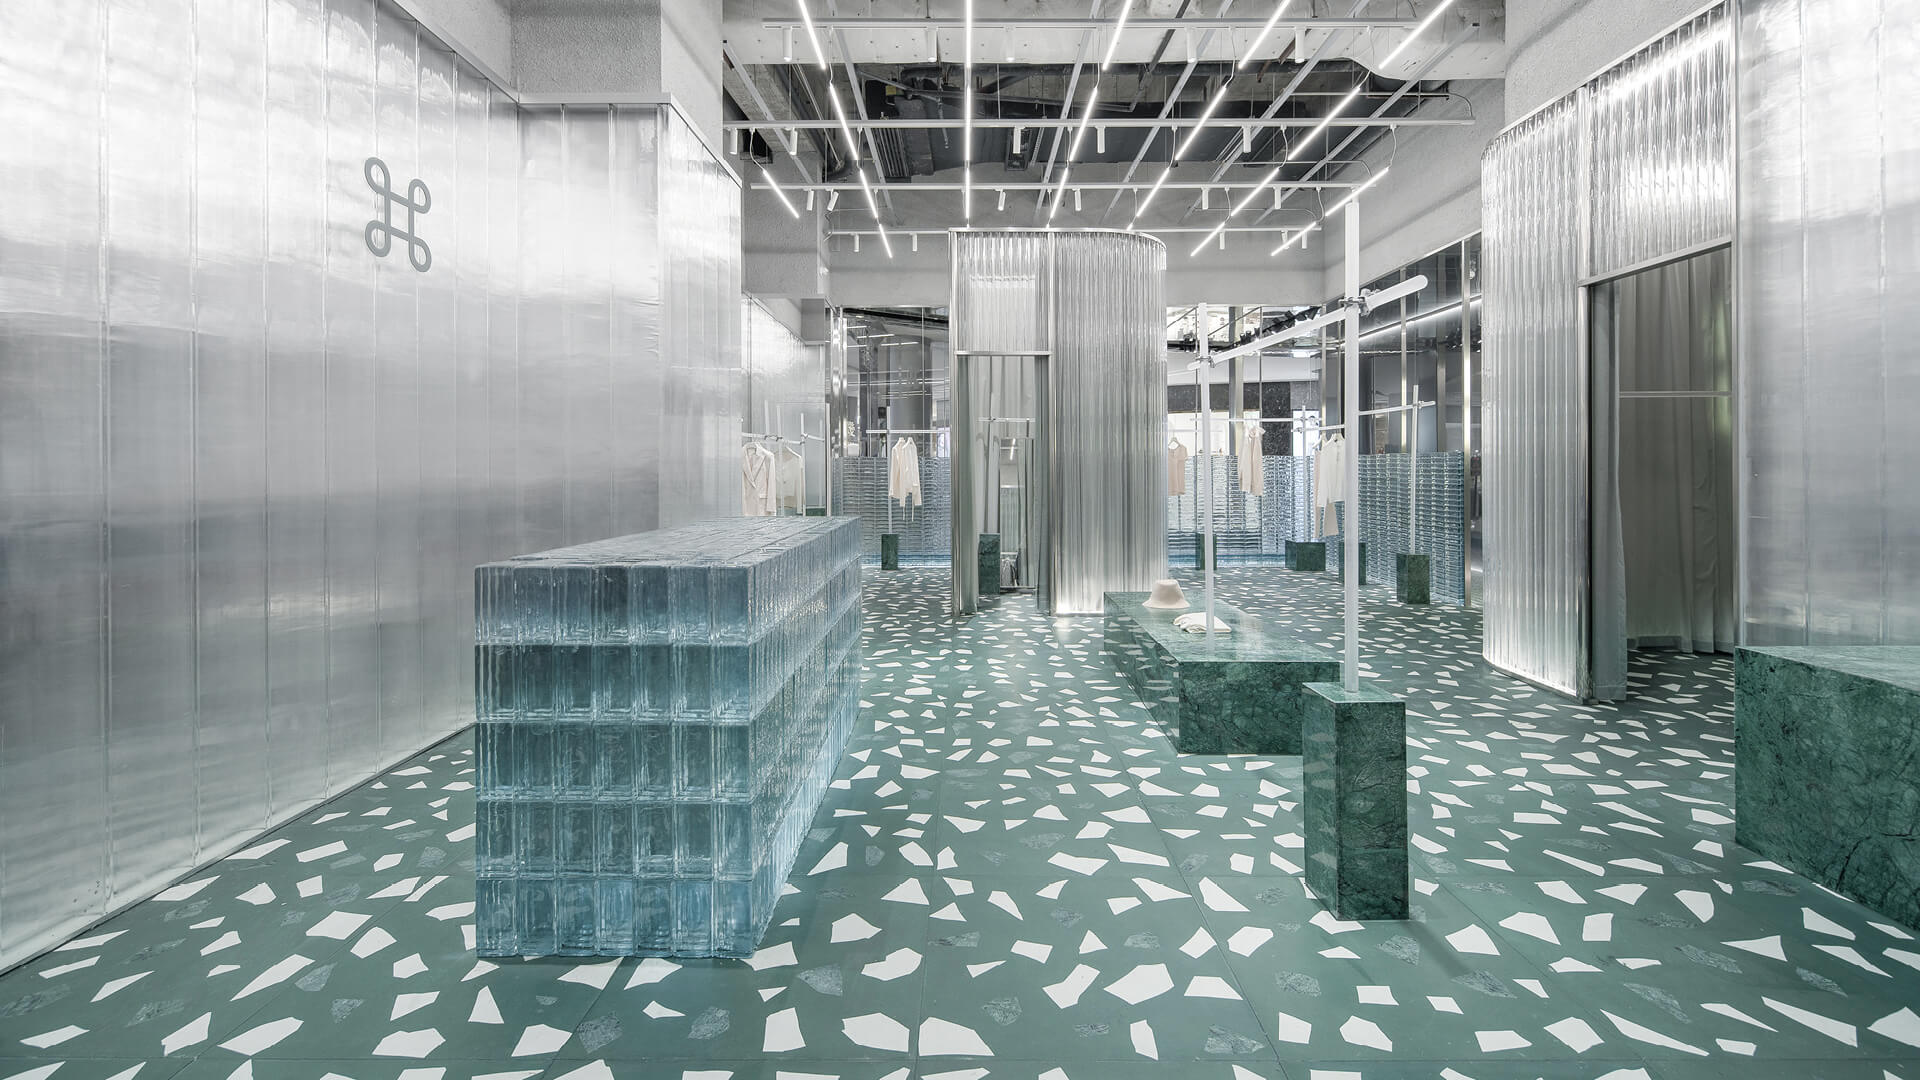 Studio 10 uses glass bricks to create an icy look for Geijoeng store in Shenzhen